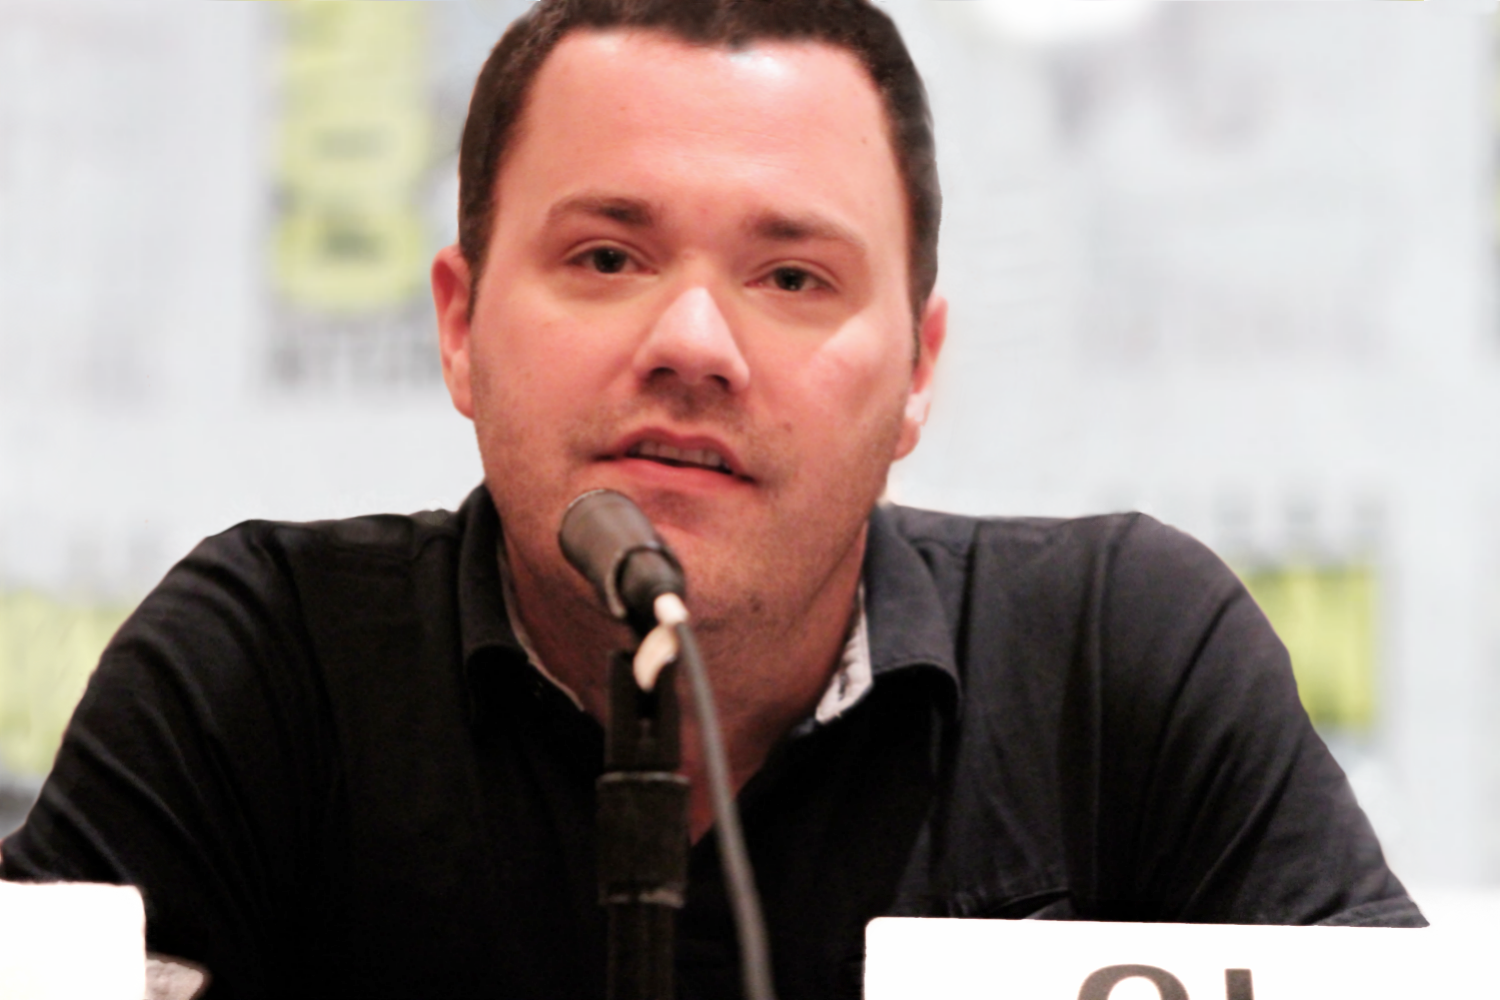 Wilson Cleveland at San Diego Comic Con